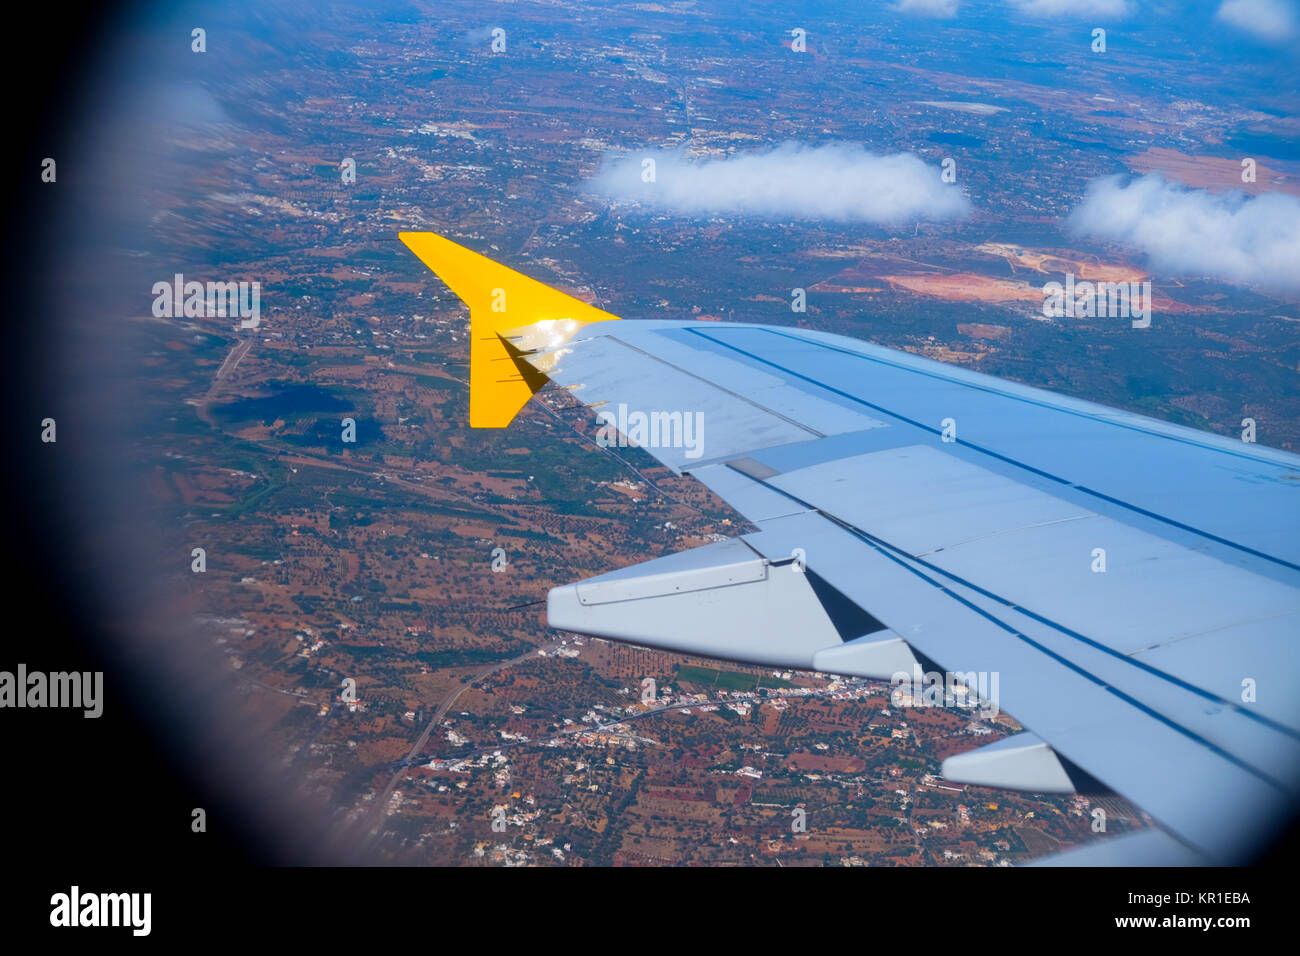 View point from inside and airoplane looking out over the left aircraft wing, in the background is the Algarve, - Stock Image